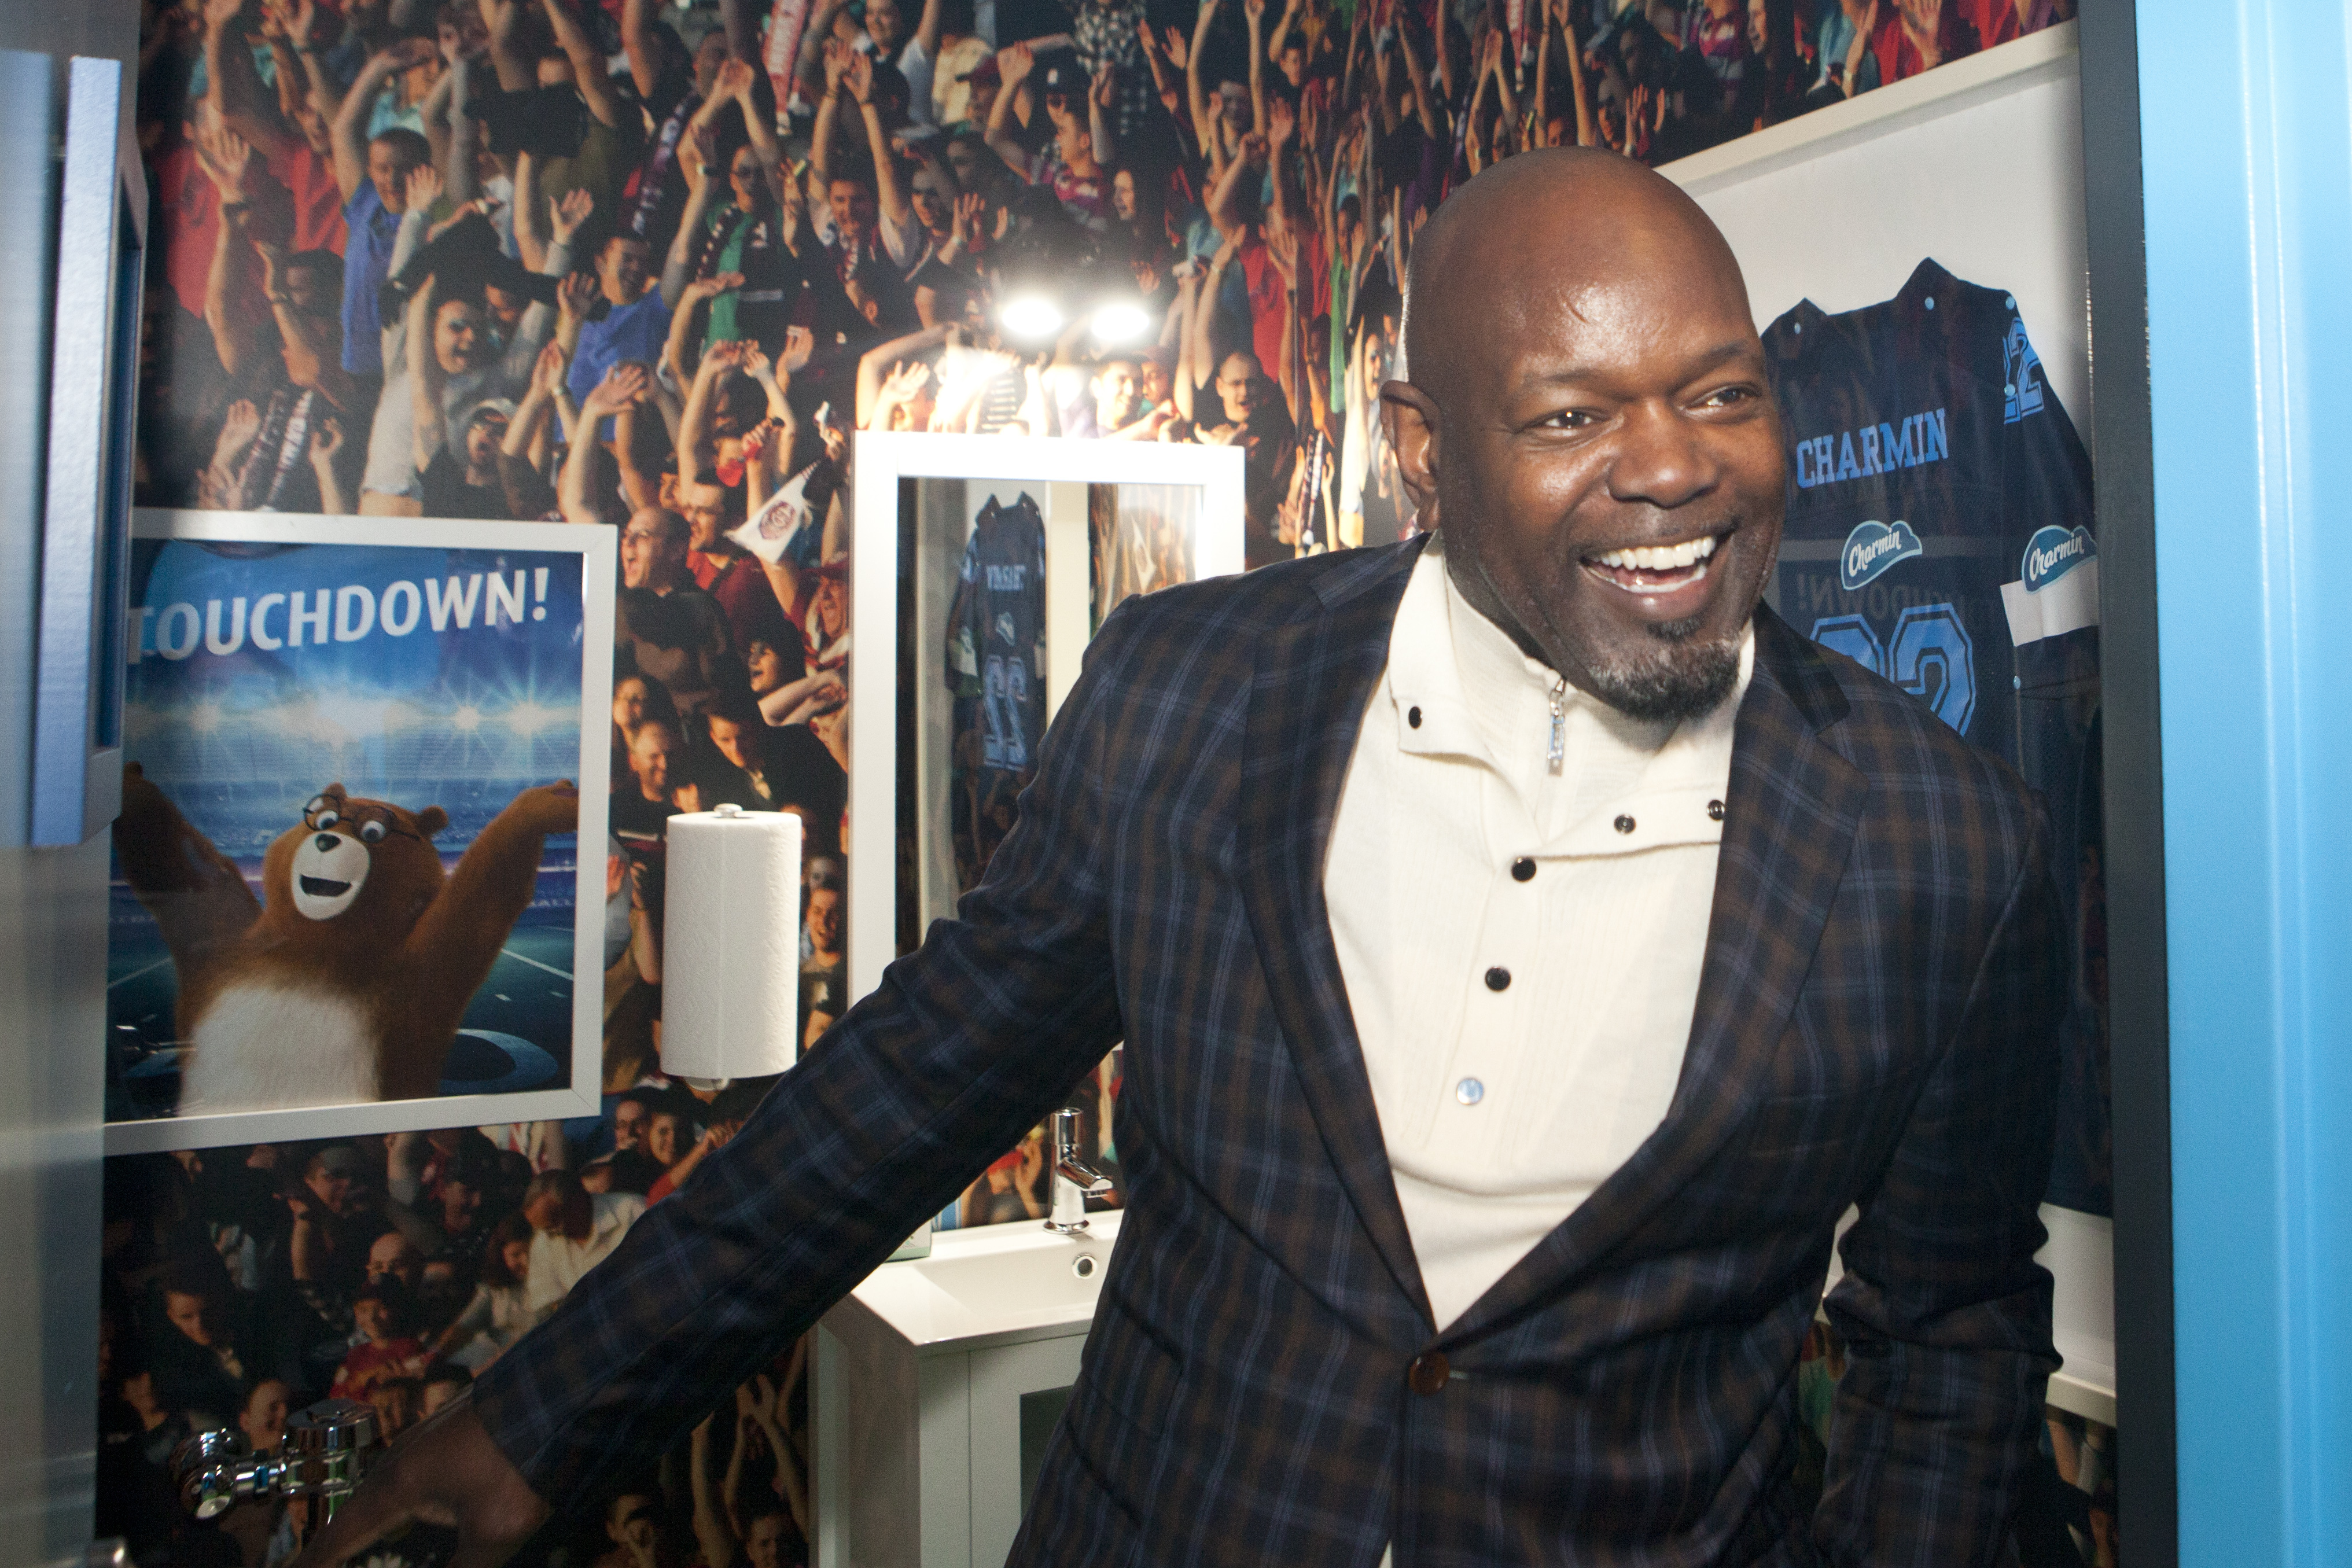 Photos of Pro Football Hall of Famer Emmit Smith at Charmin Toilet ...